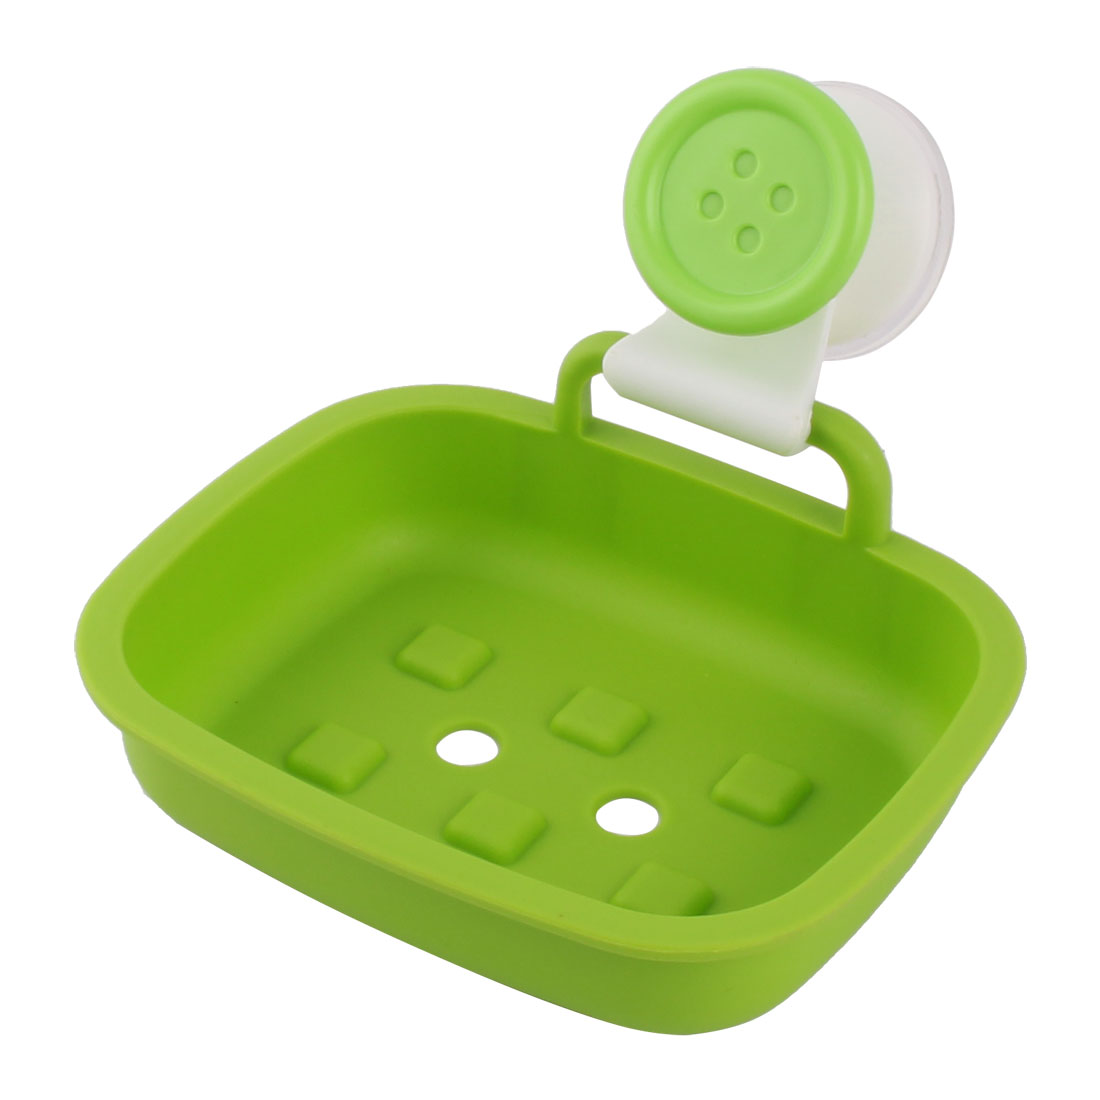 Household Plastic Rectangle Wall Mounted Suction Shower Soap Container Draining Box Green